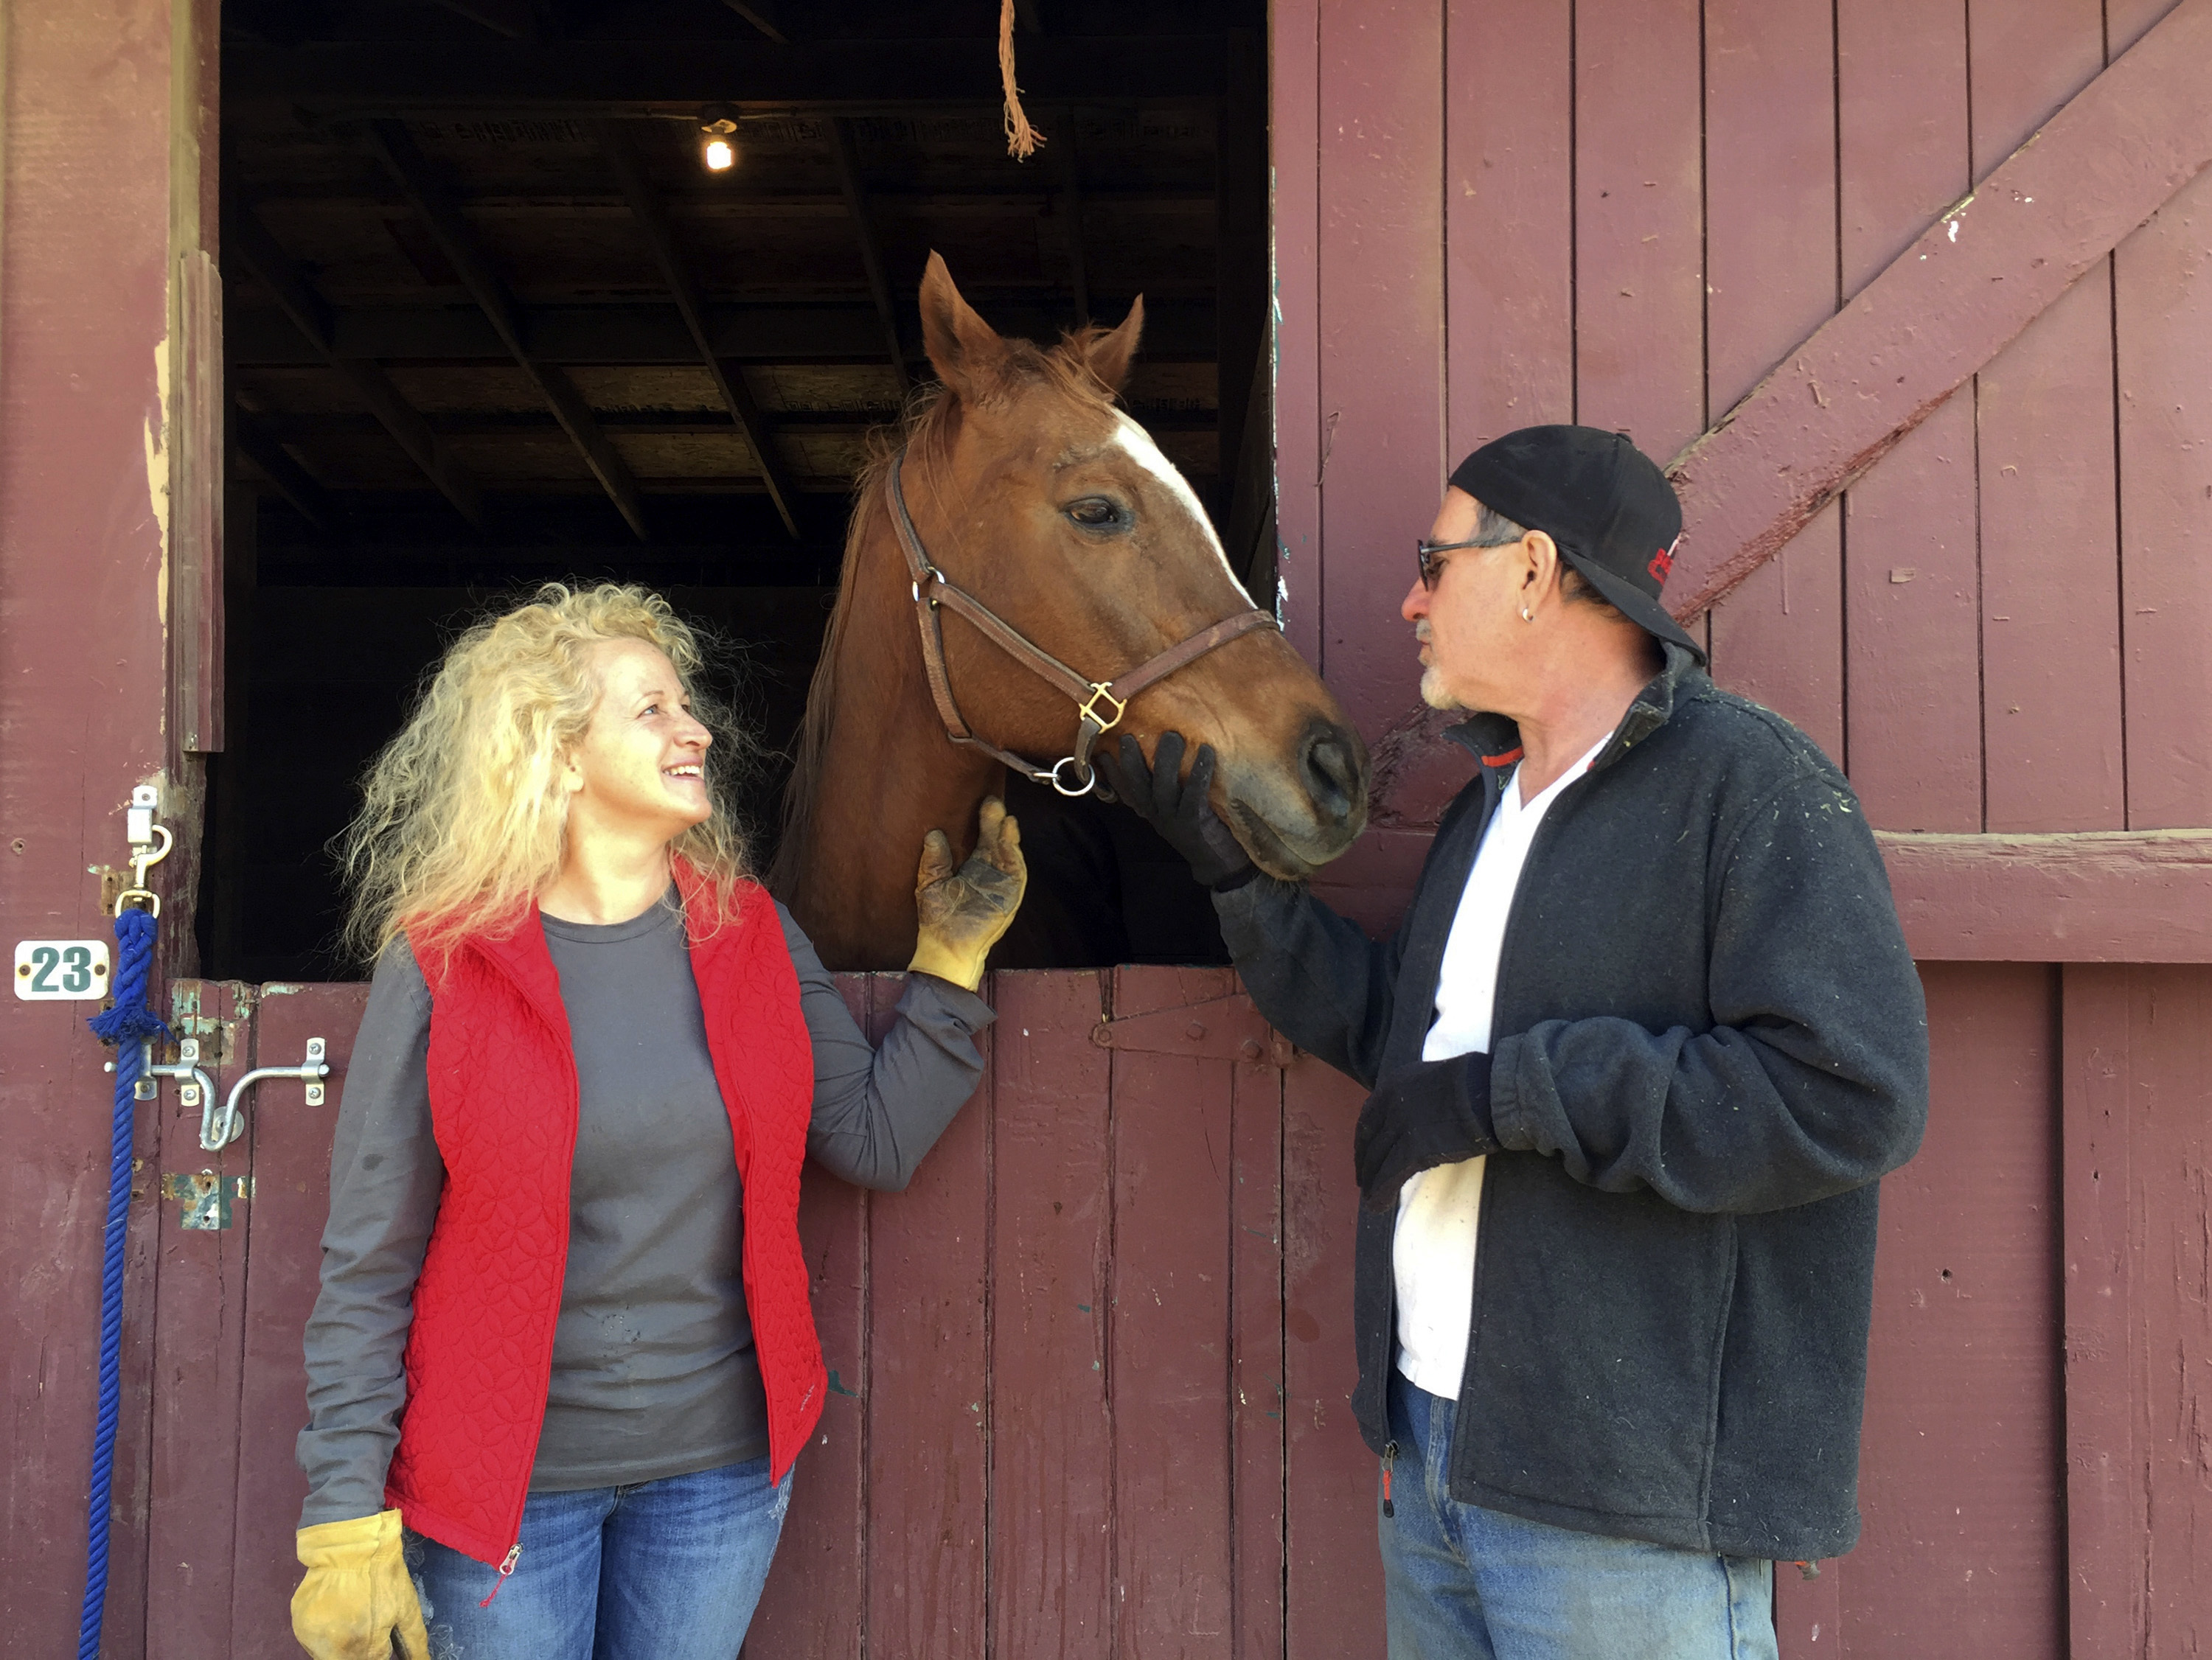 "<div class=""meta image-caption""><div class=""origin-logo origin-image none""><span>none</span></div><span class=""caption-text"">Brian Bromberg and Wendy Frank pose with one of the horses they rescued from their Ojai, Calif., home. They're calling their survival and that of their beloved horses a miracle. (Amanda Lee Myers/AP Photo)</span></div>"